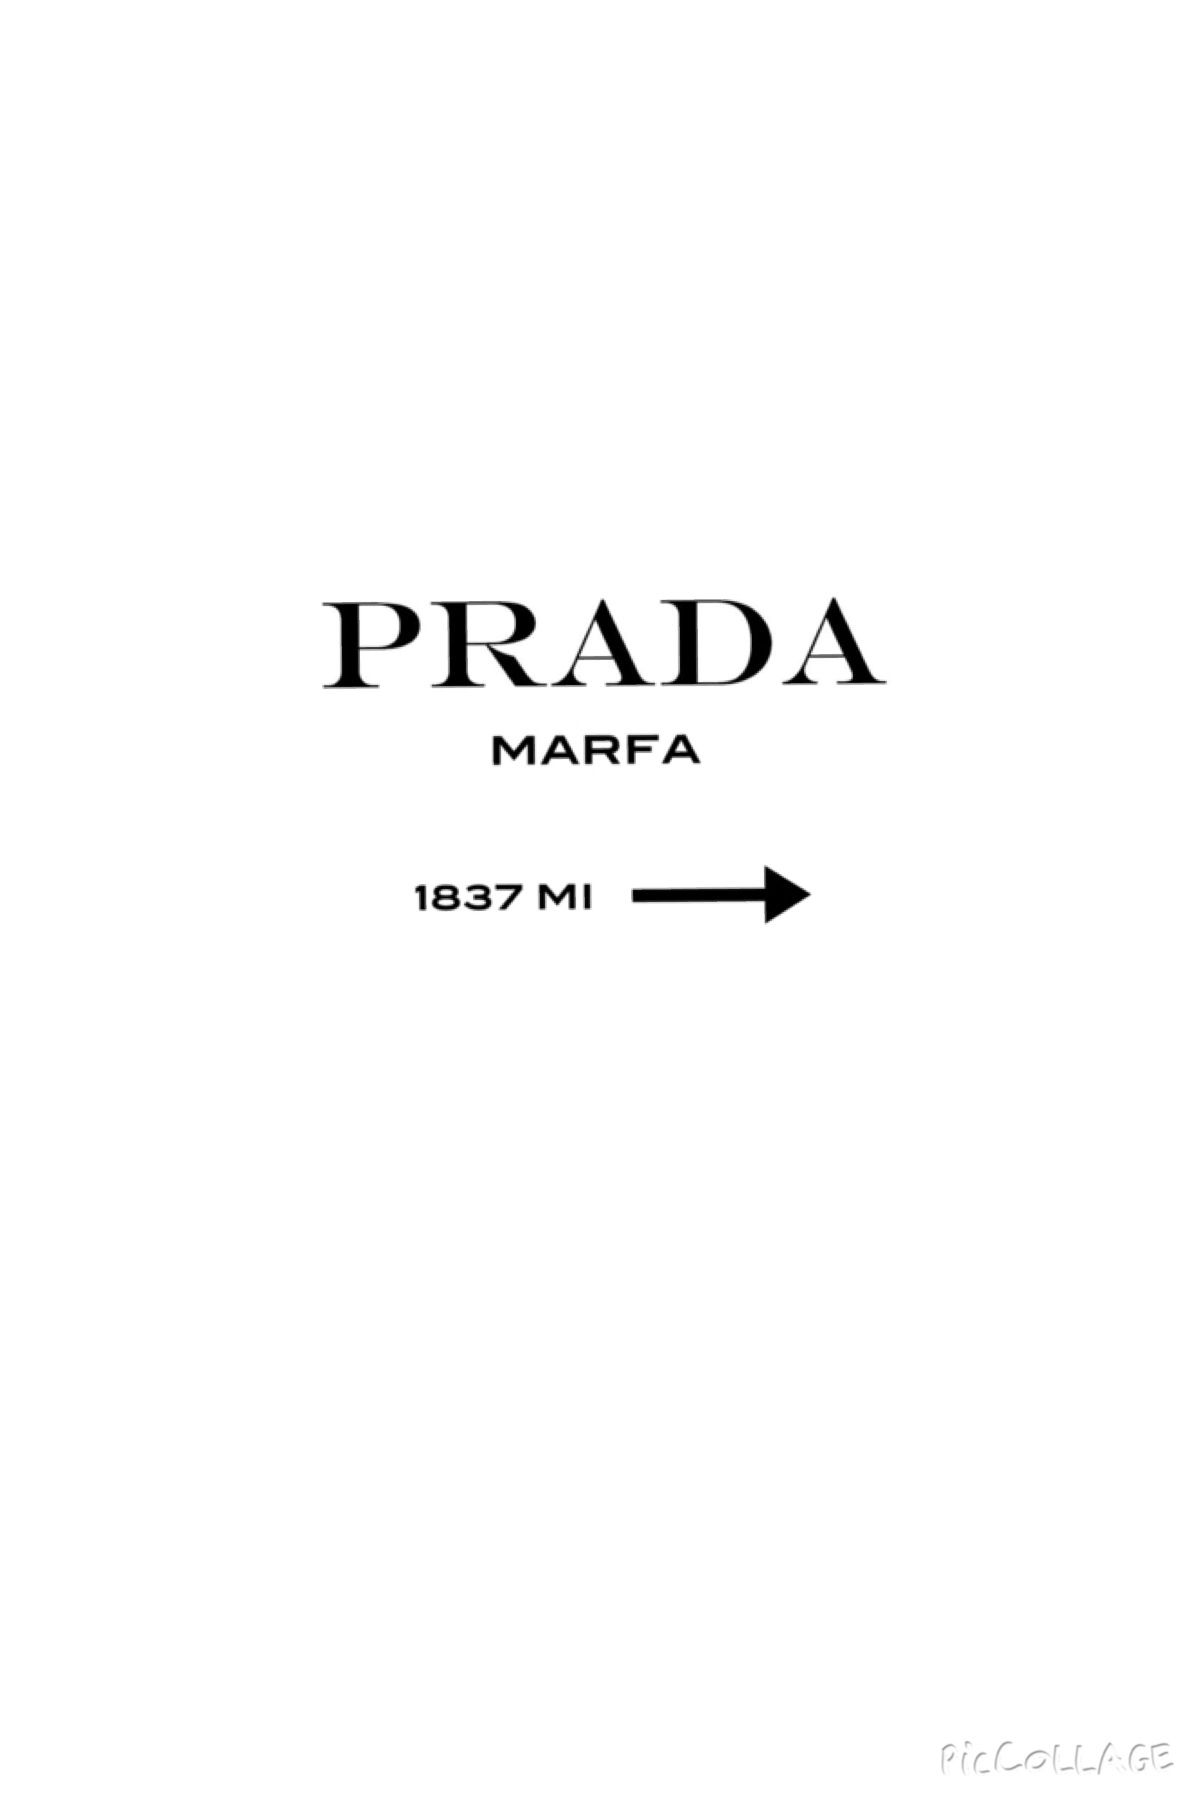 prada marfa milano iphone wallpaper iphone wallpapers